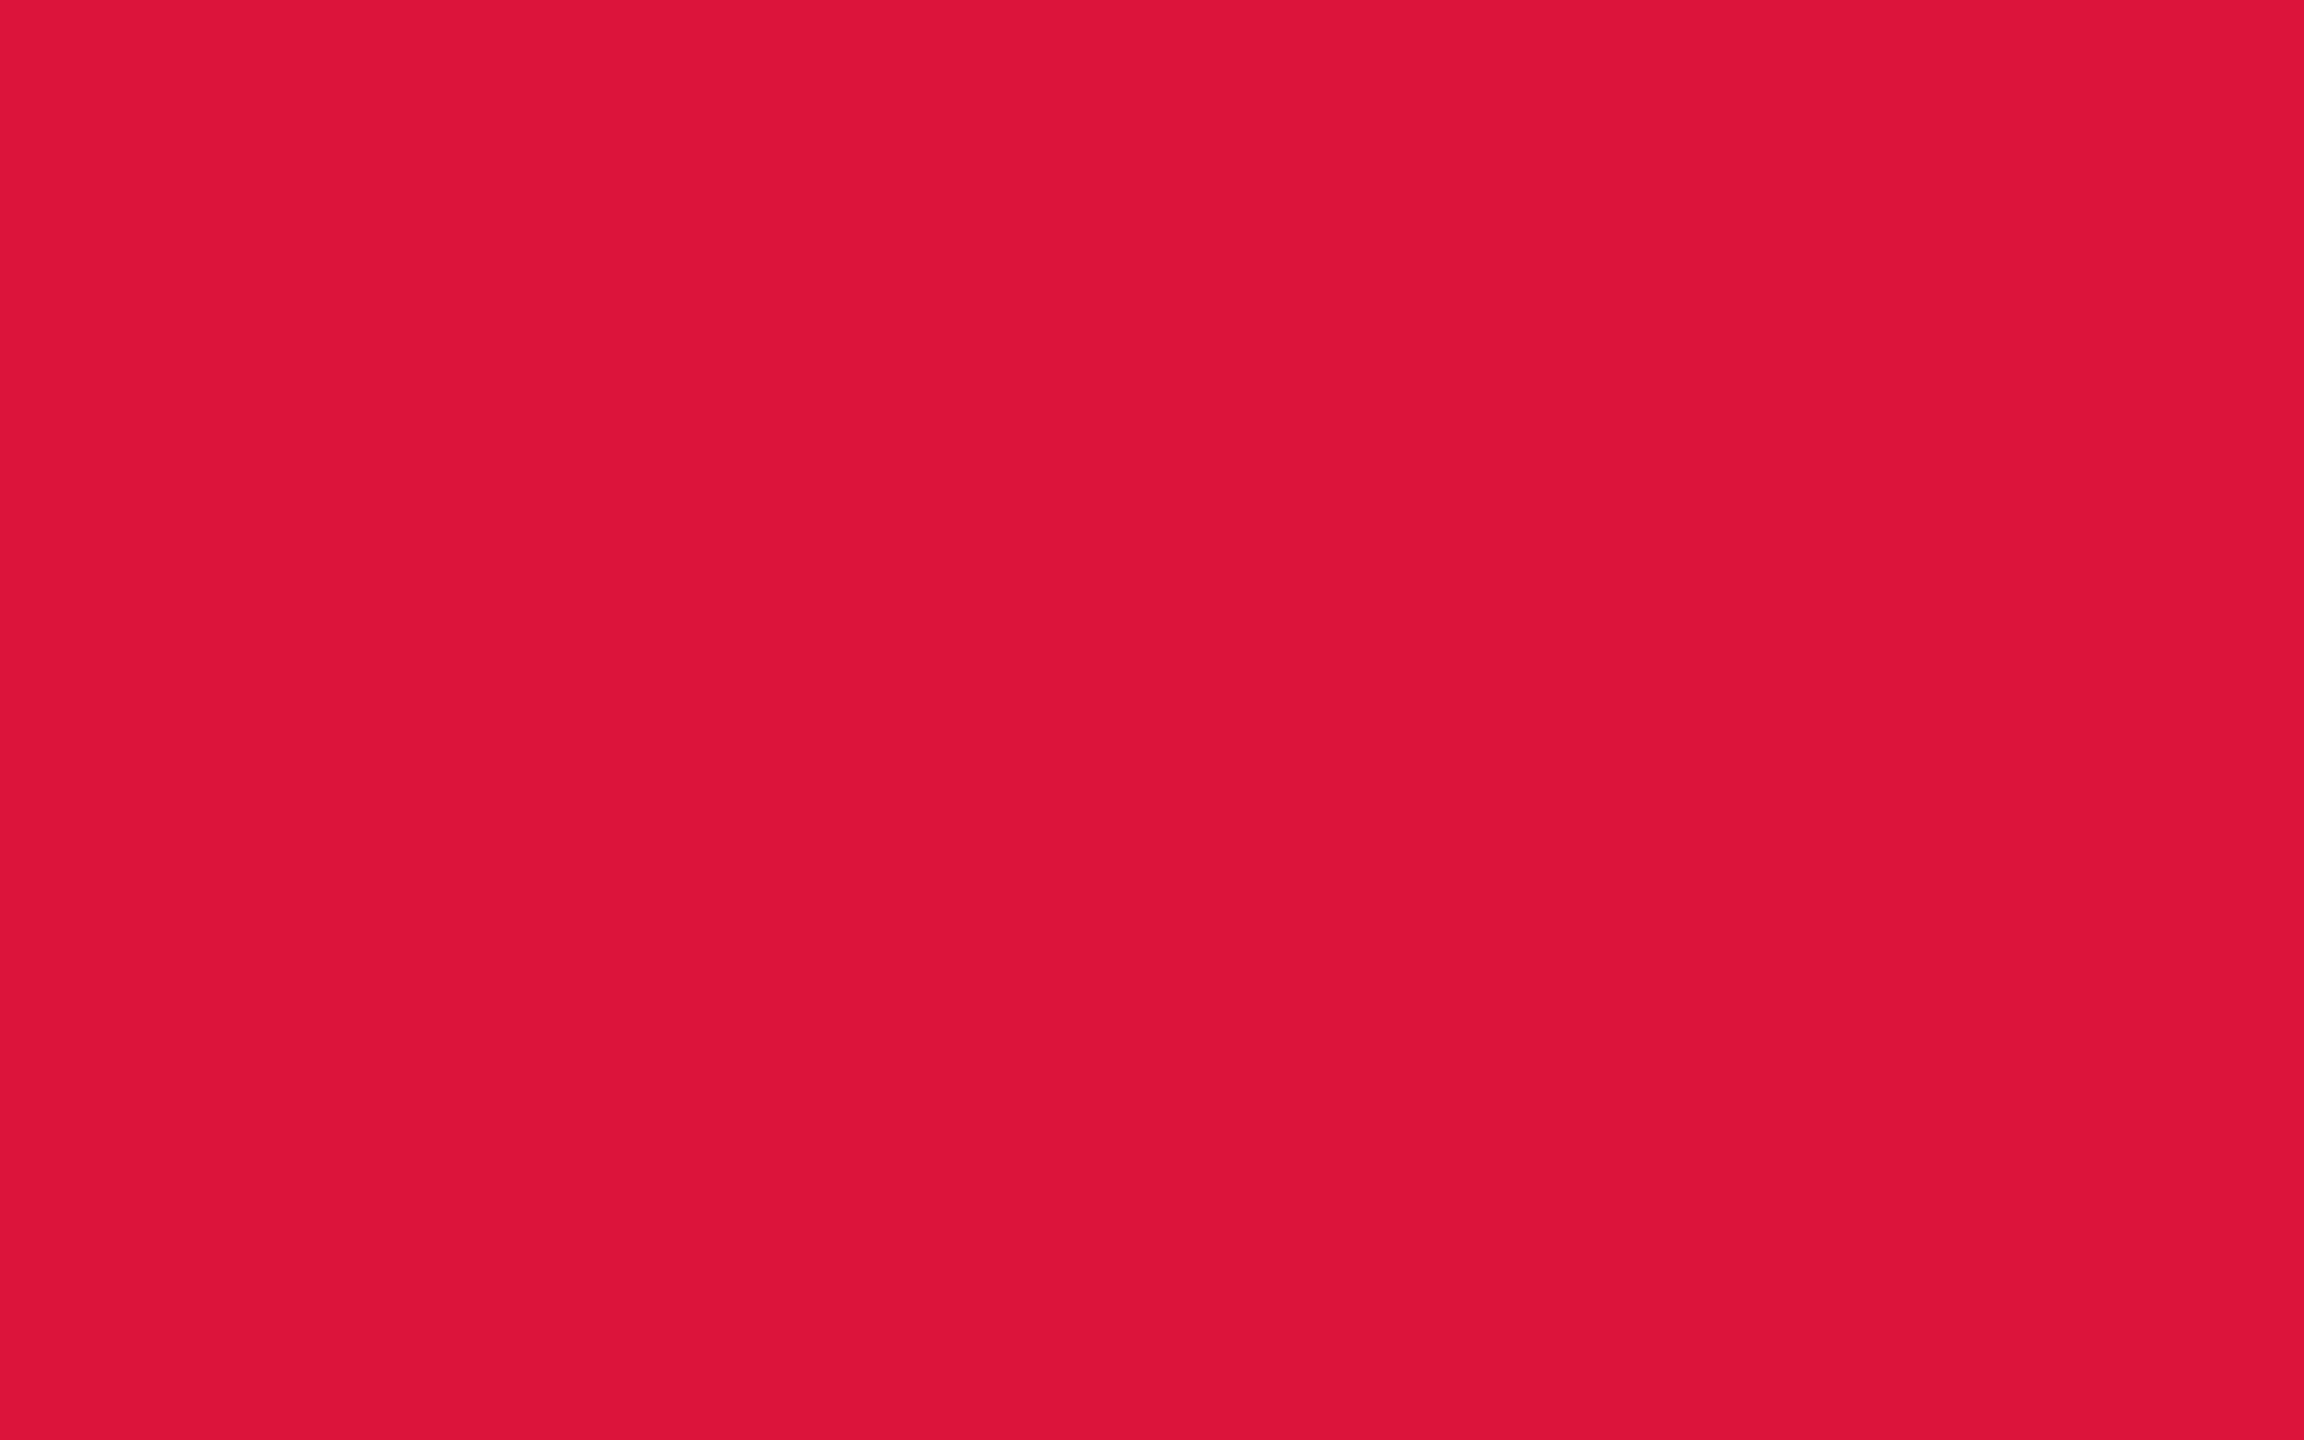 2304x1440 Crimson Solid Color Background